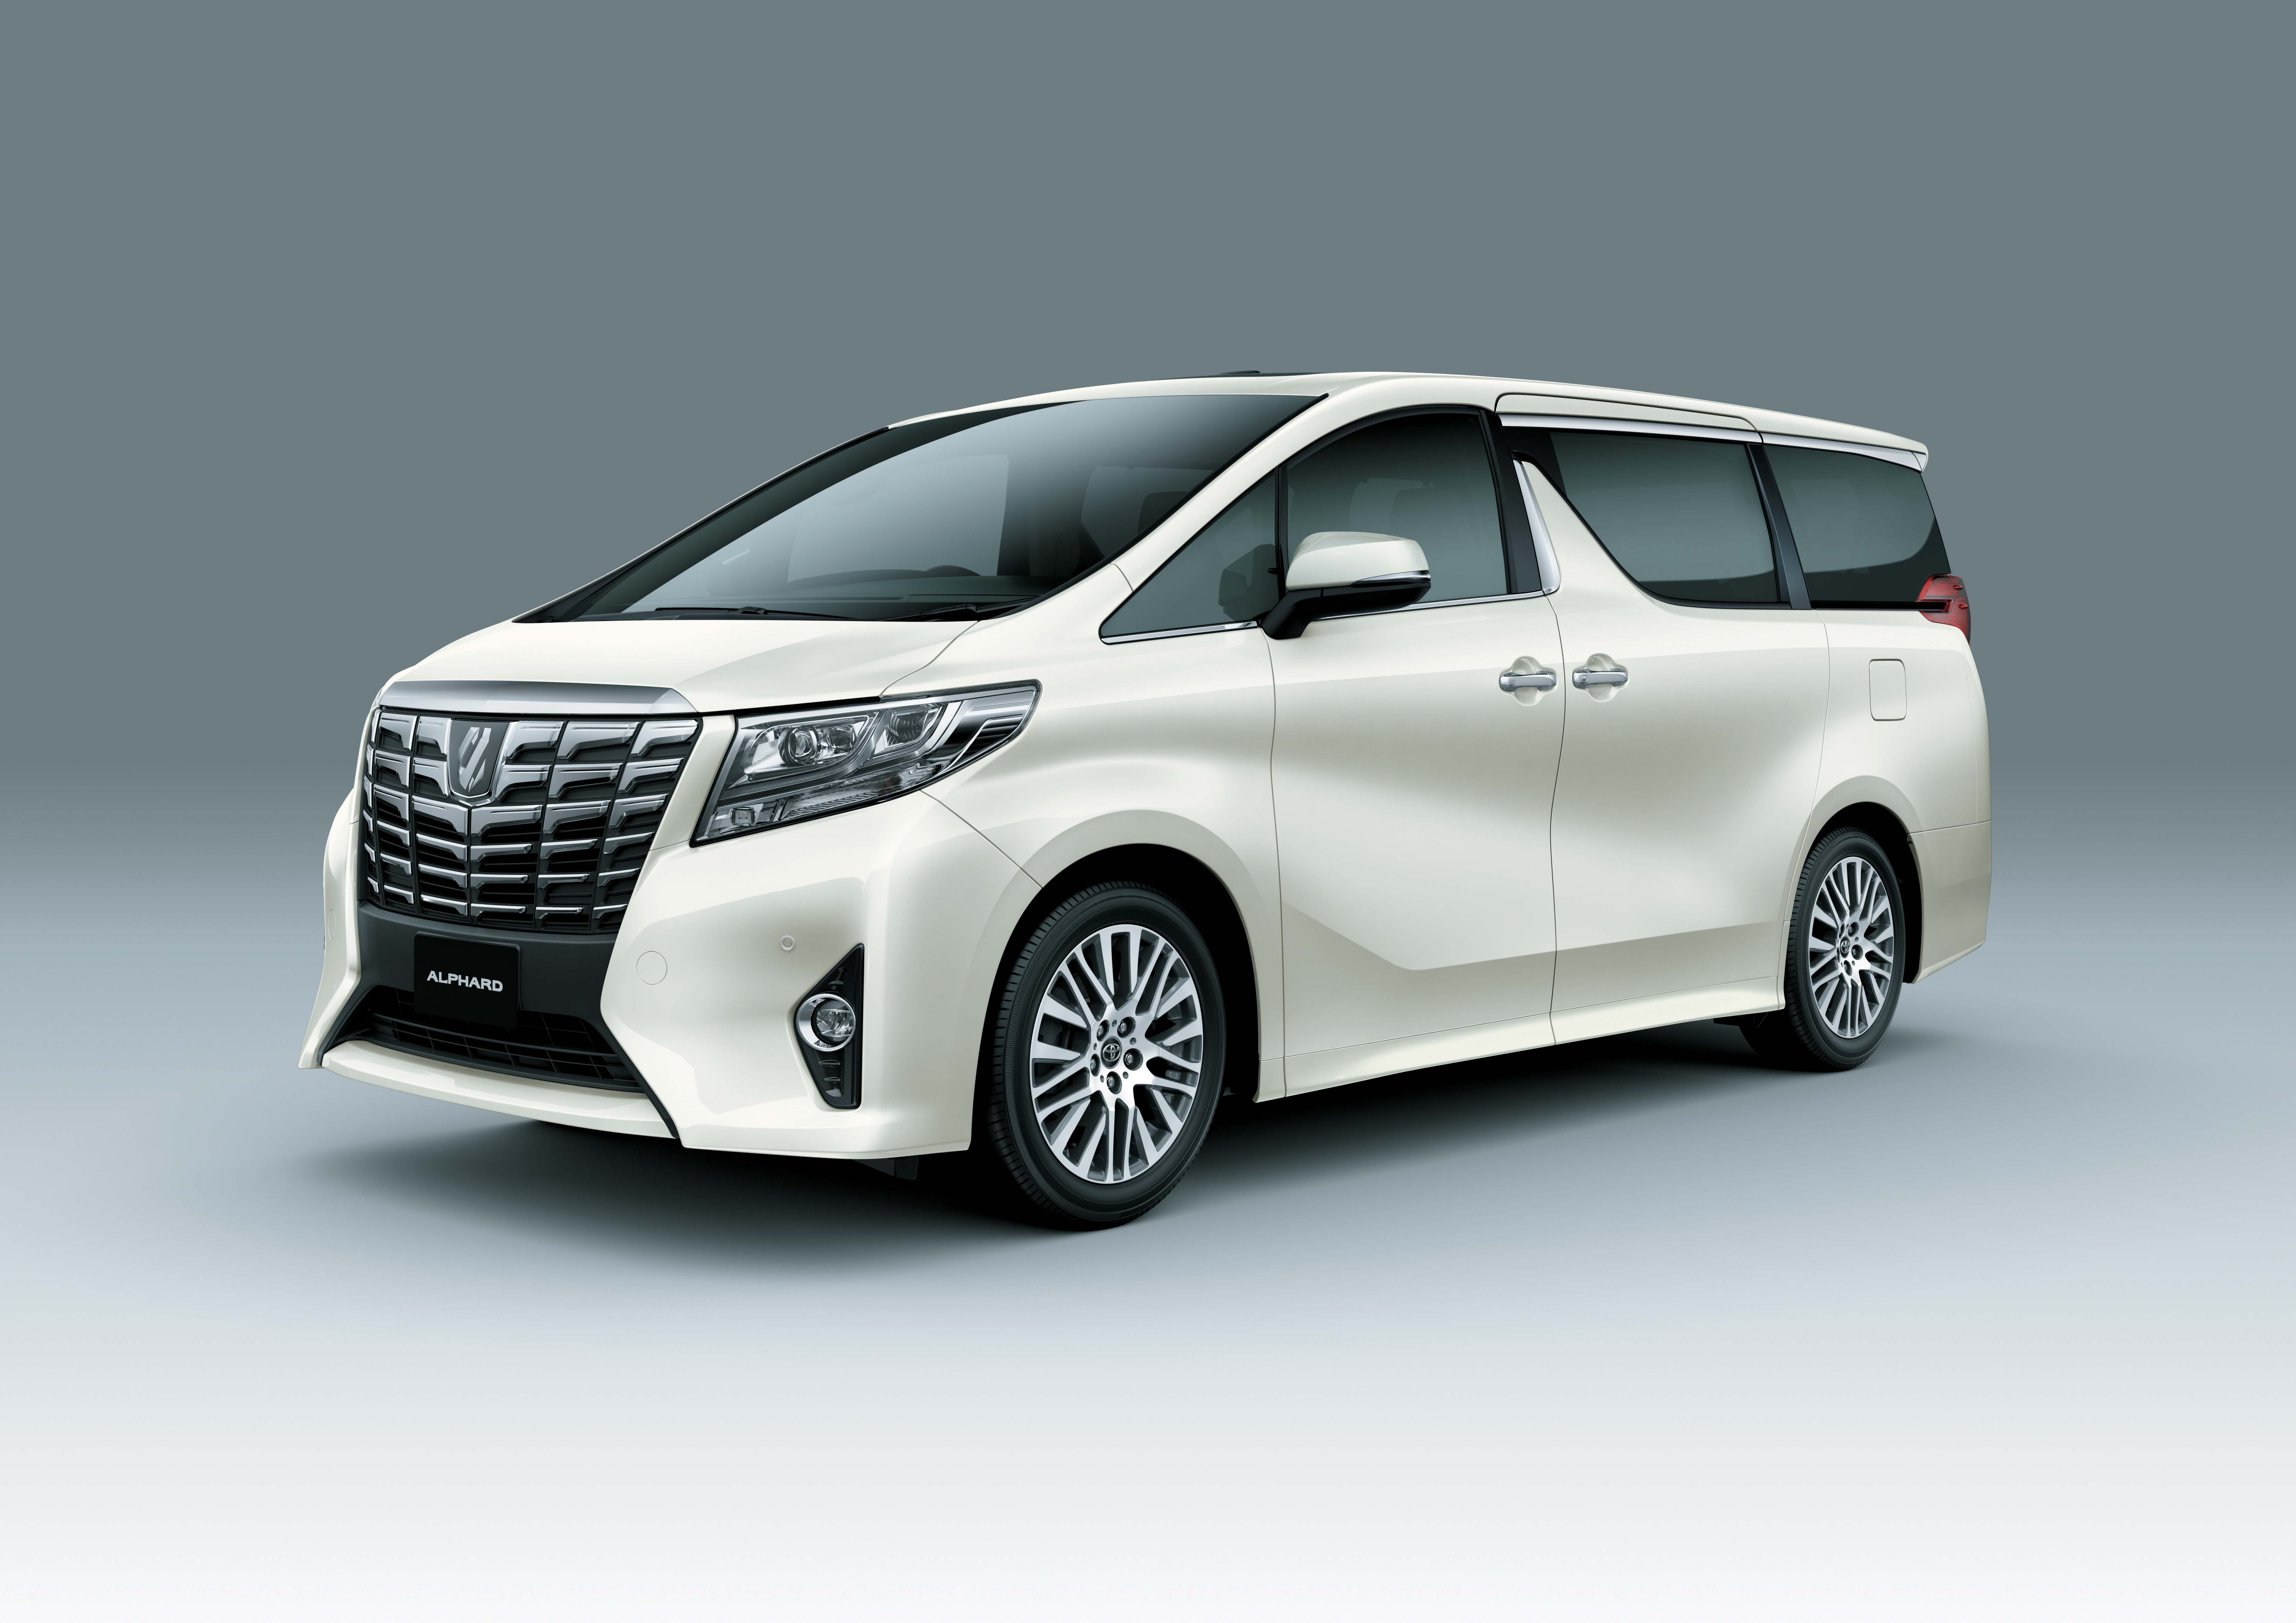 all new alphard 2021 cara mematikan alarm grand avanza umw toyota issues recall of vellfire for ecu epb fix further information owners affected cars can contact any authorised service centre or call the freephone at 1800 8 869682